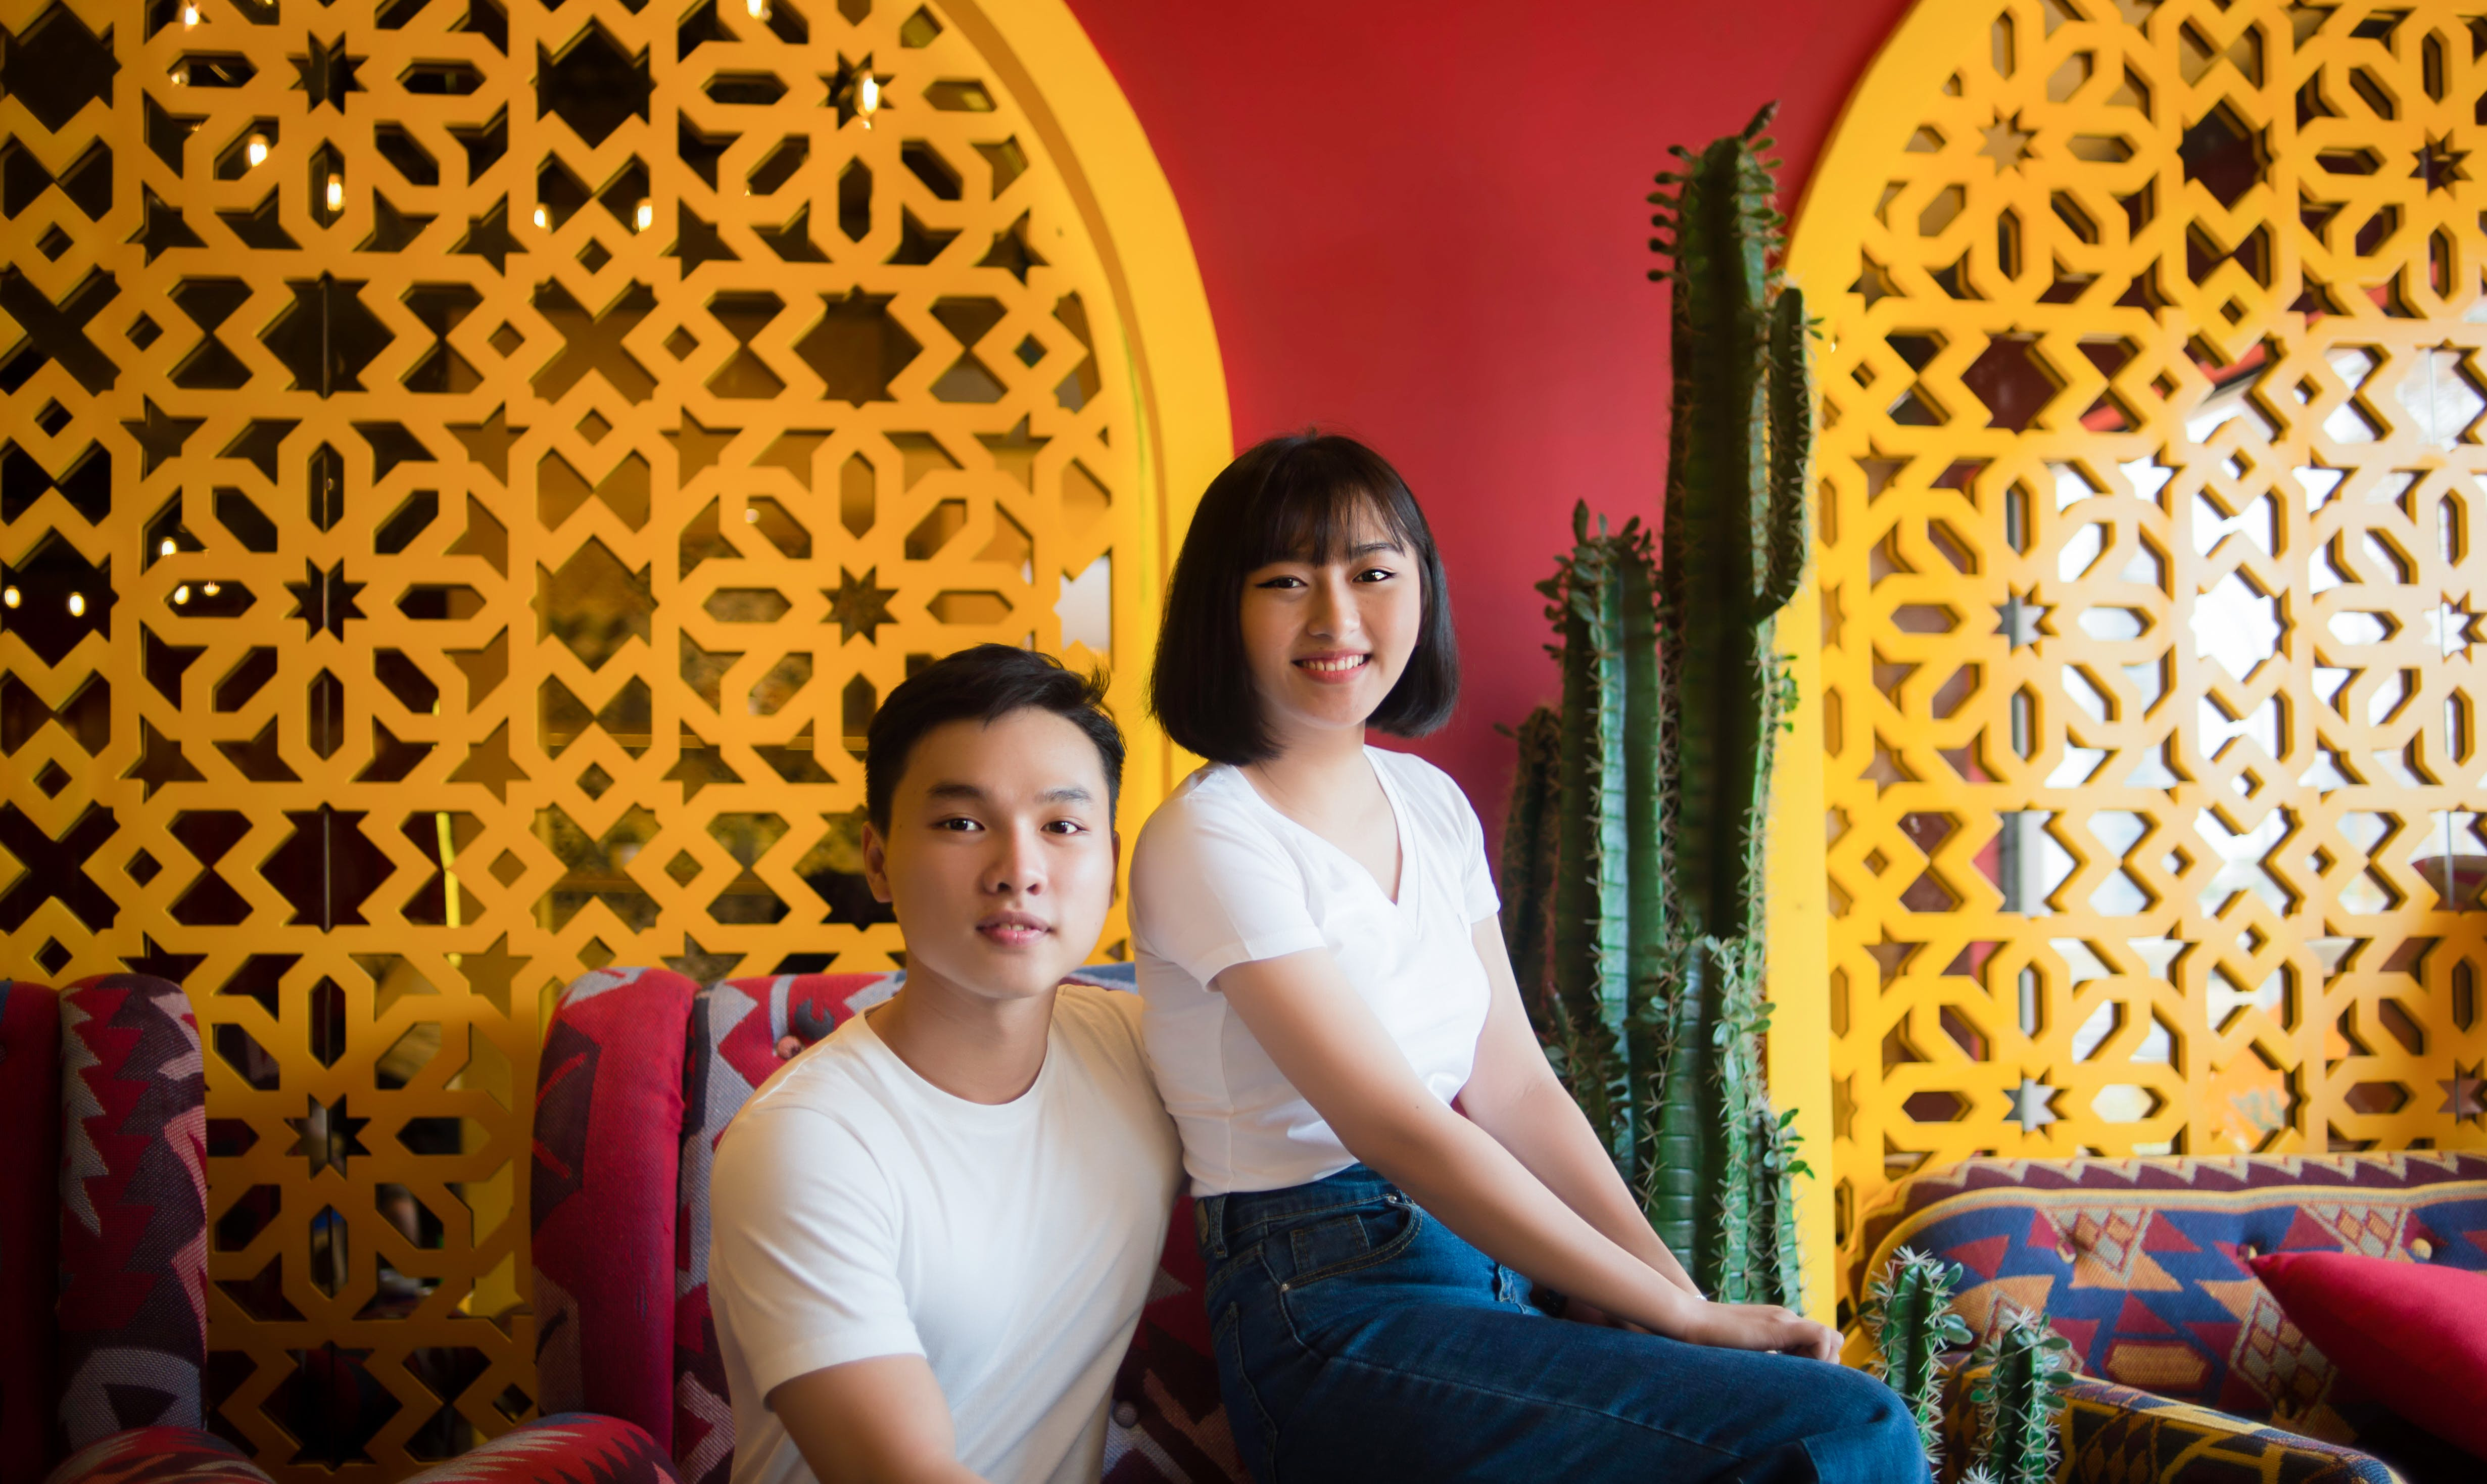 Man And Woman Sitting On Chair Beside Cactus Plant